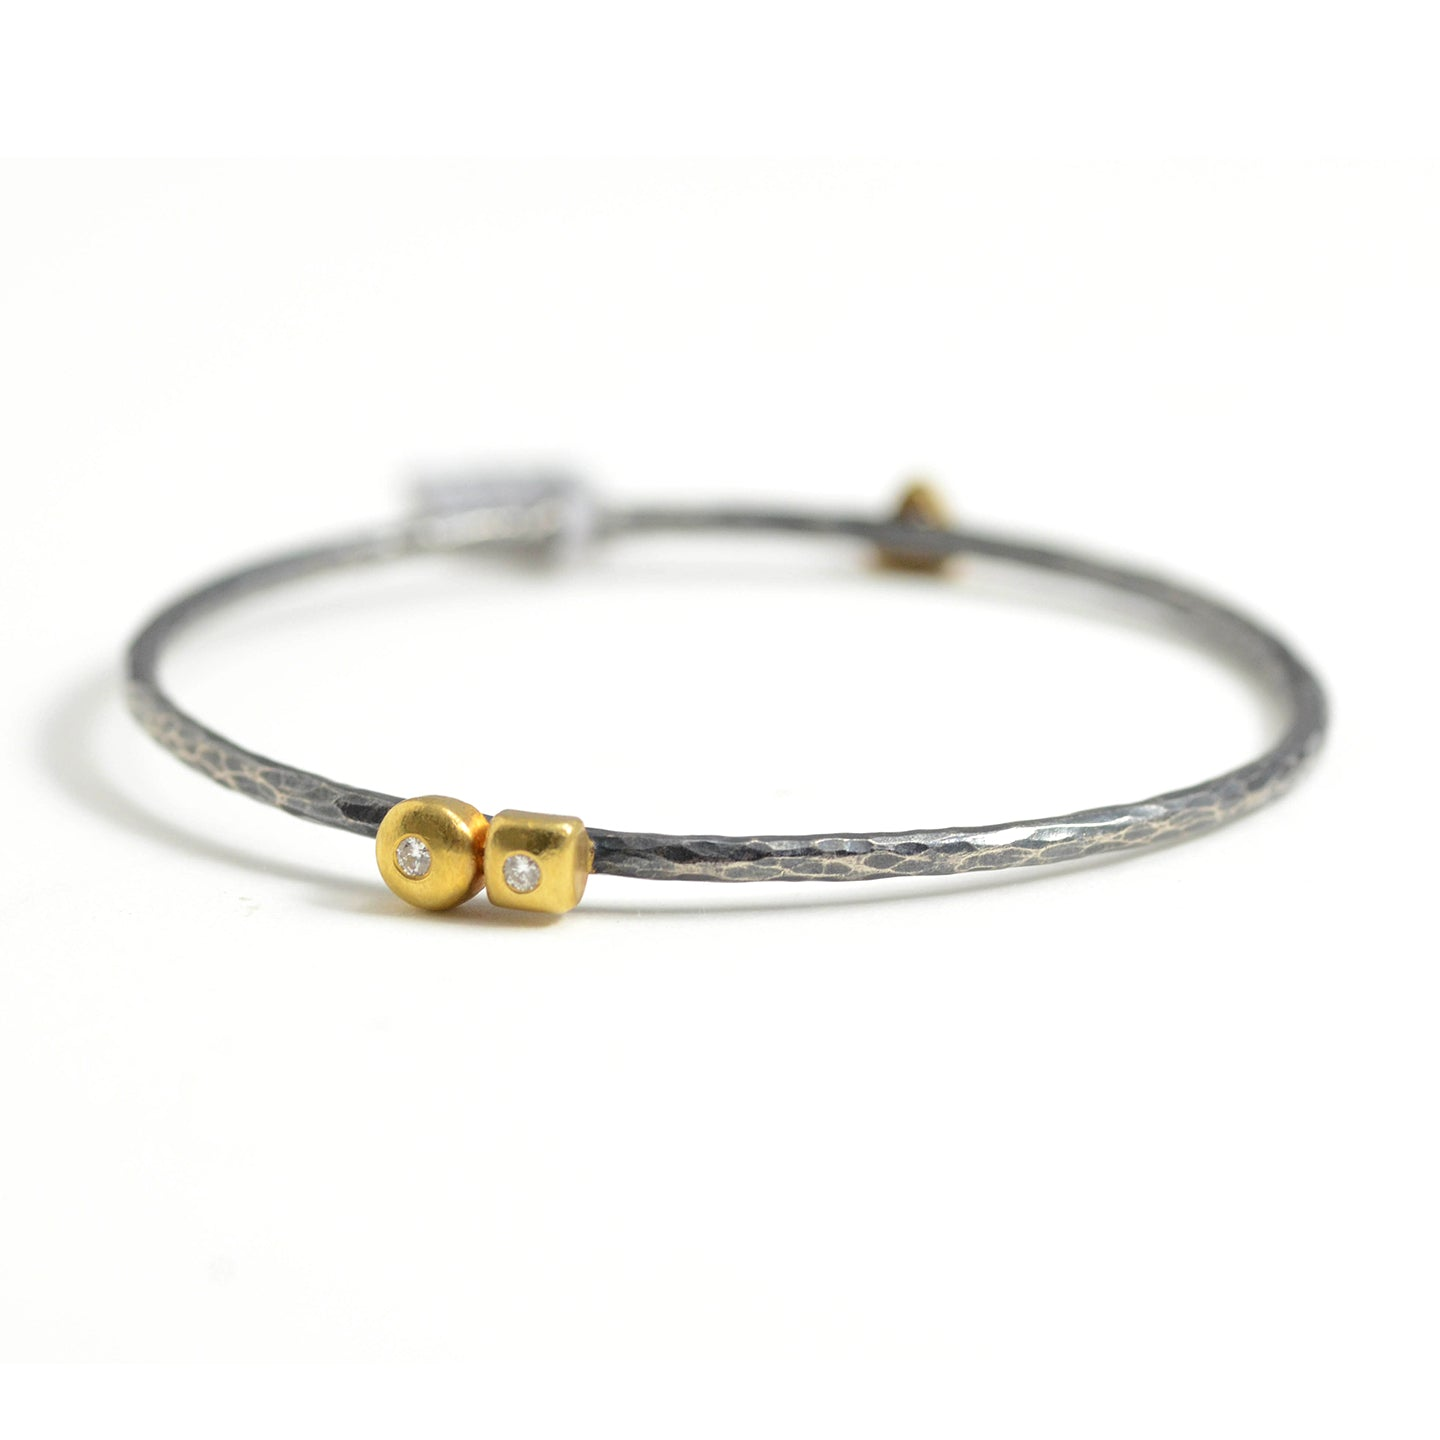 Lika Behar mixed metal bangle with golden nuggets and diamonds